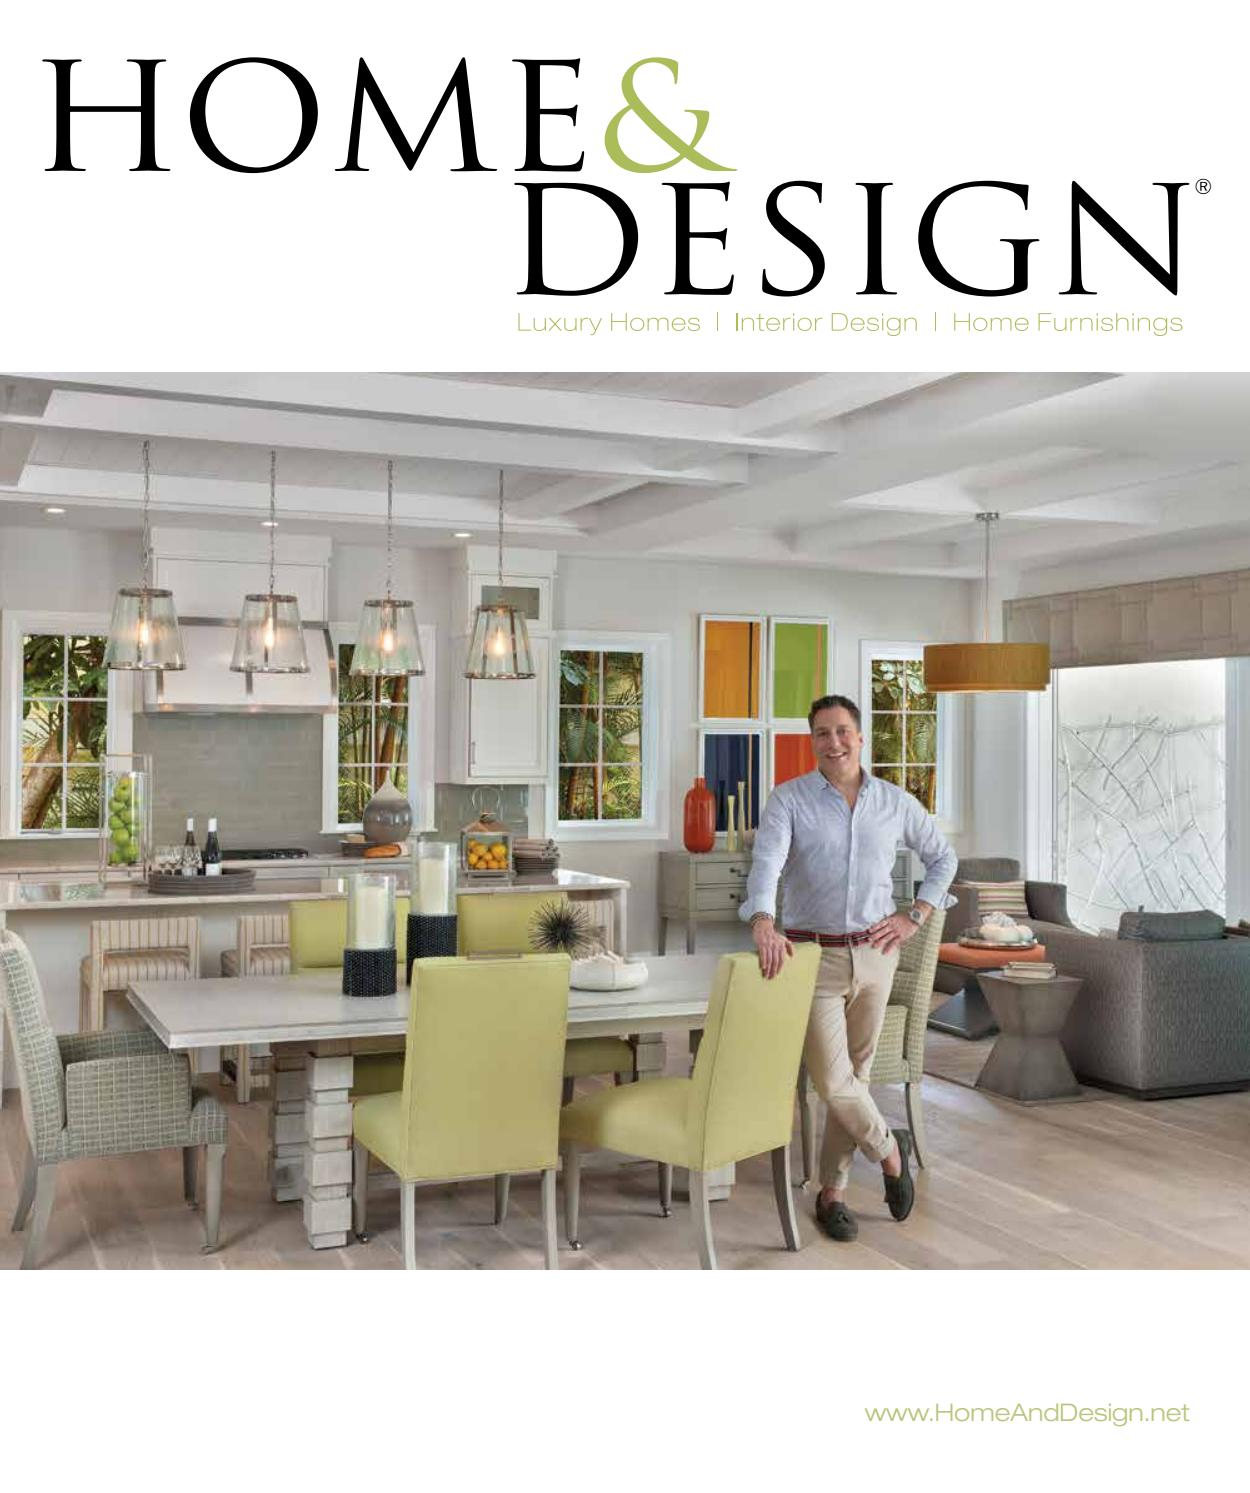 Home Design Magazine 2016 Southwest Florida Edition by Anthony